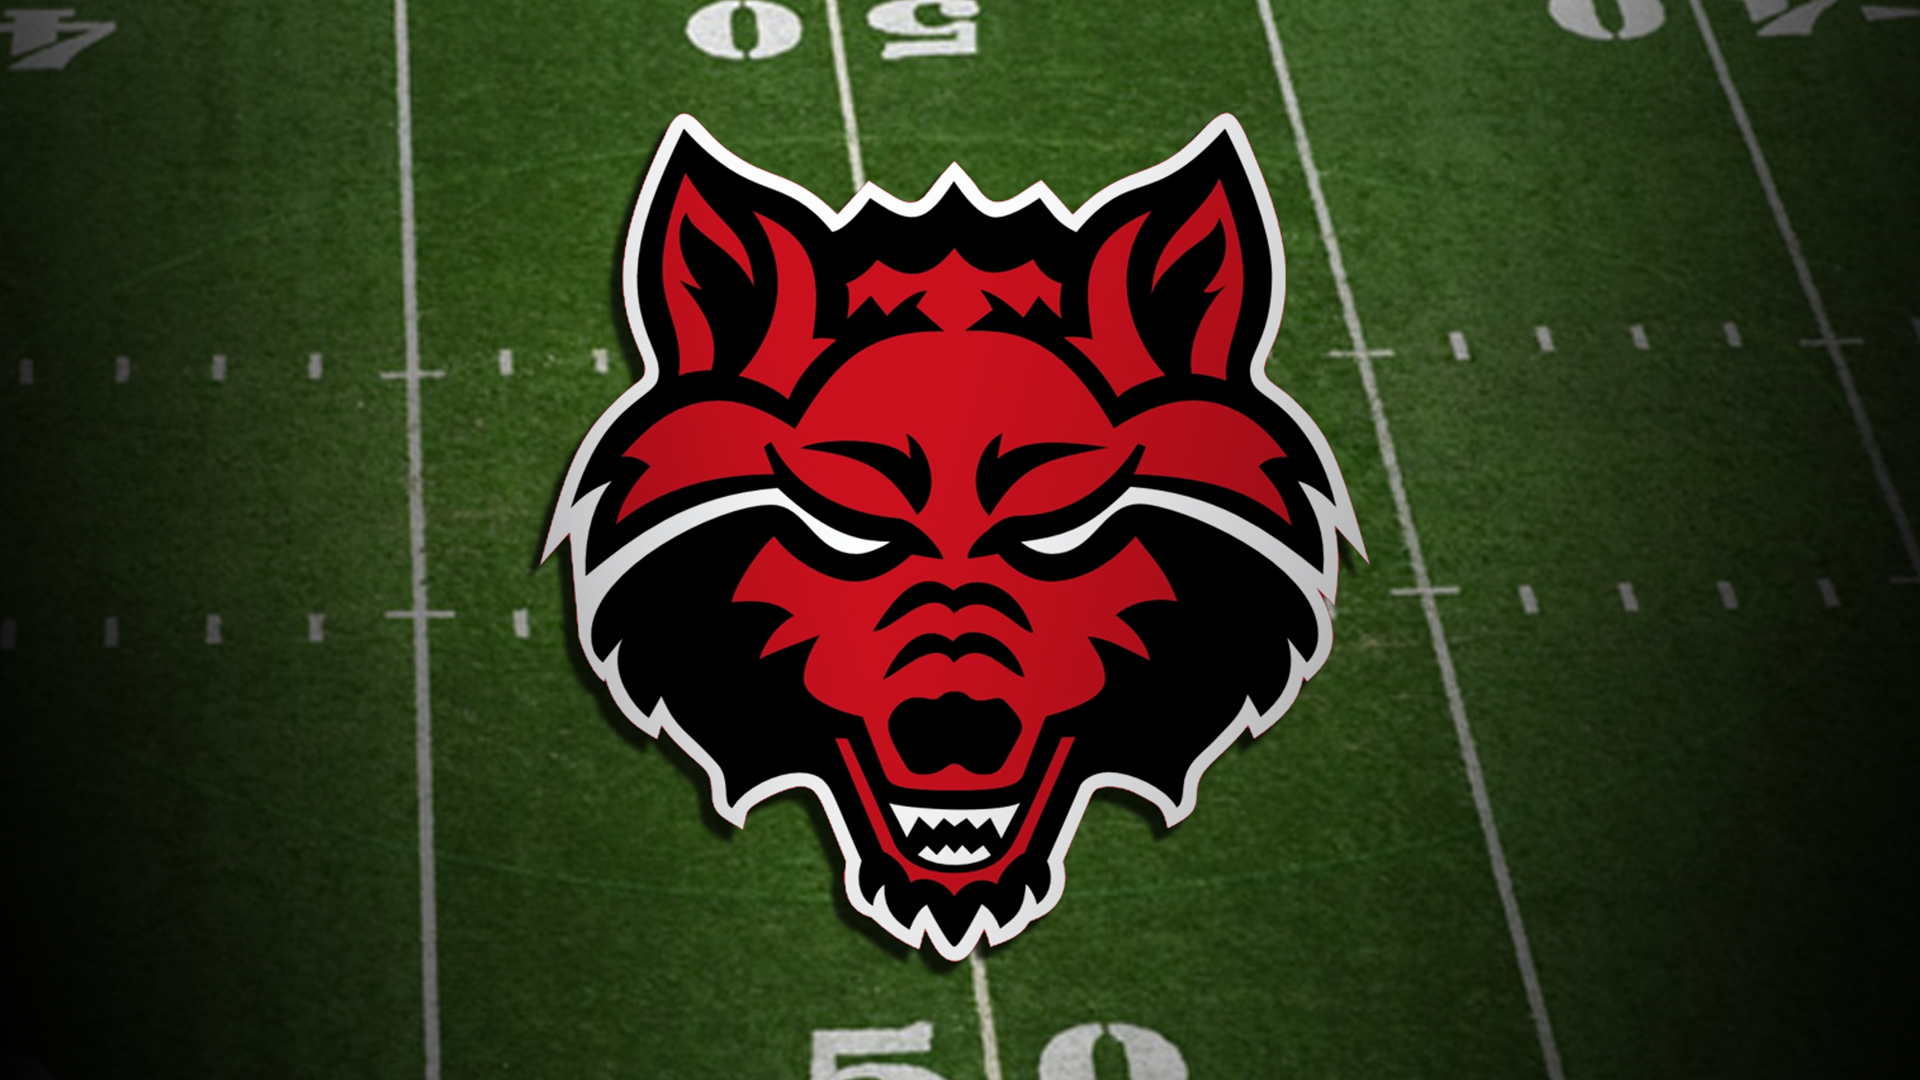 asu redwolves football_1479001964934.jpg